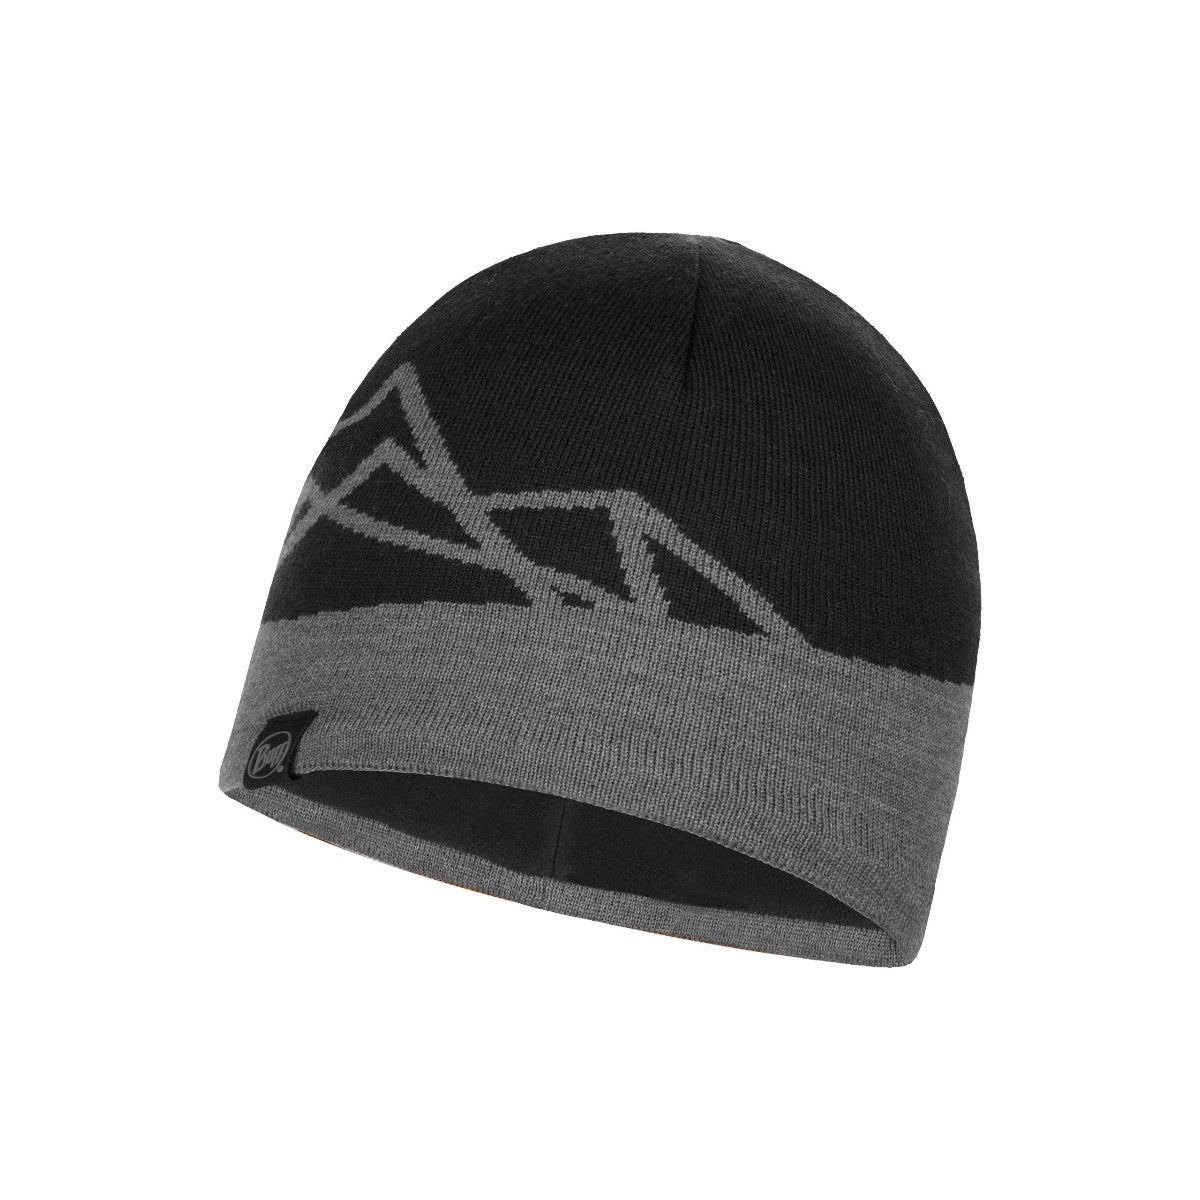 117859.999, Buff, Knitted & Polar Hat Yost Black, Yost Black, Beanies for Men | Knitted Beanie